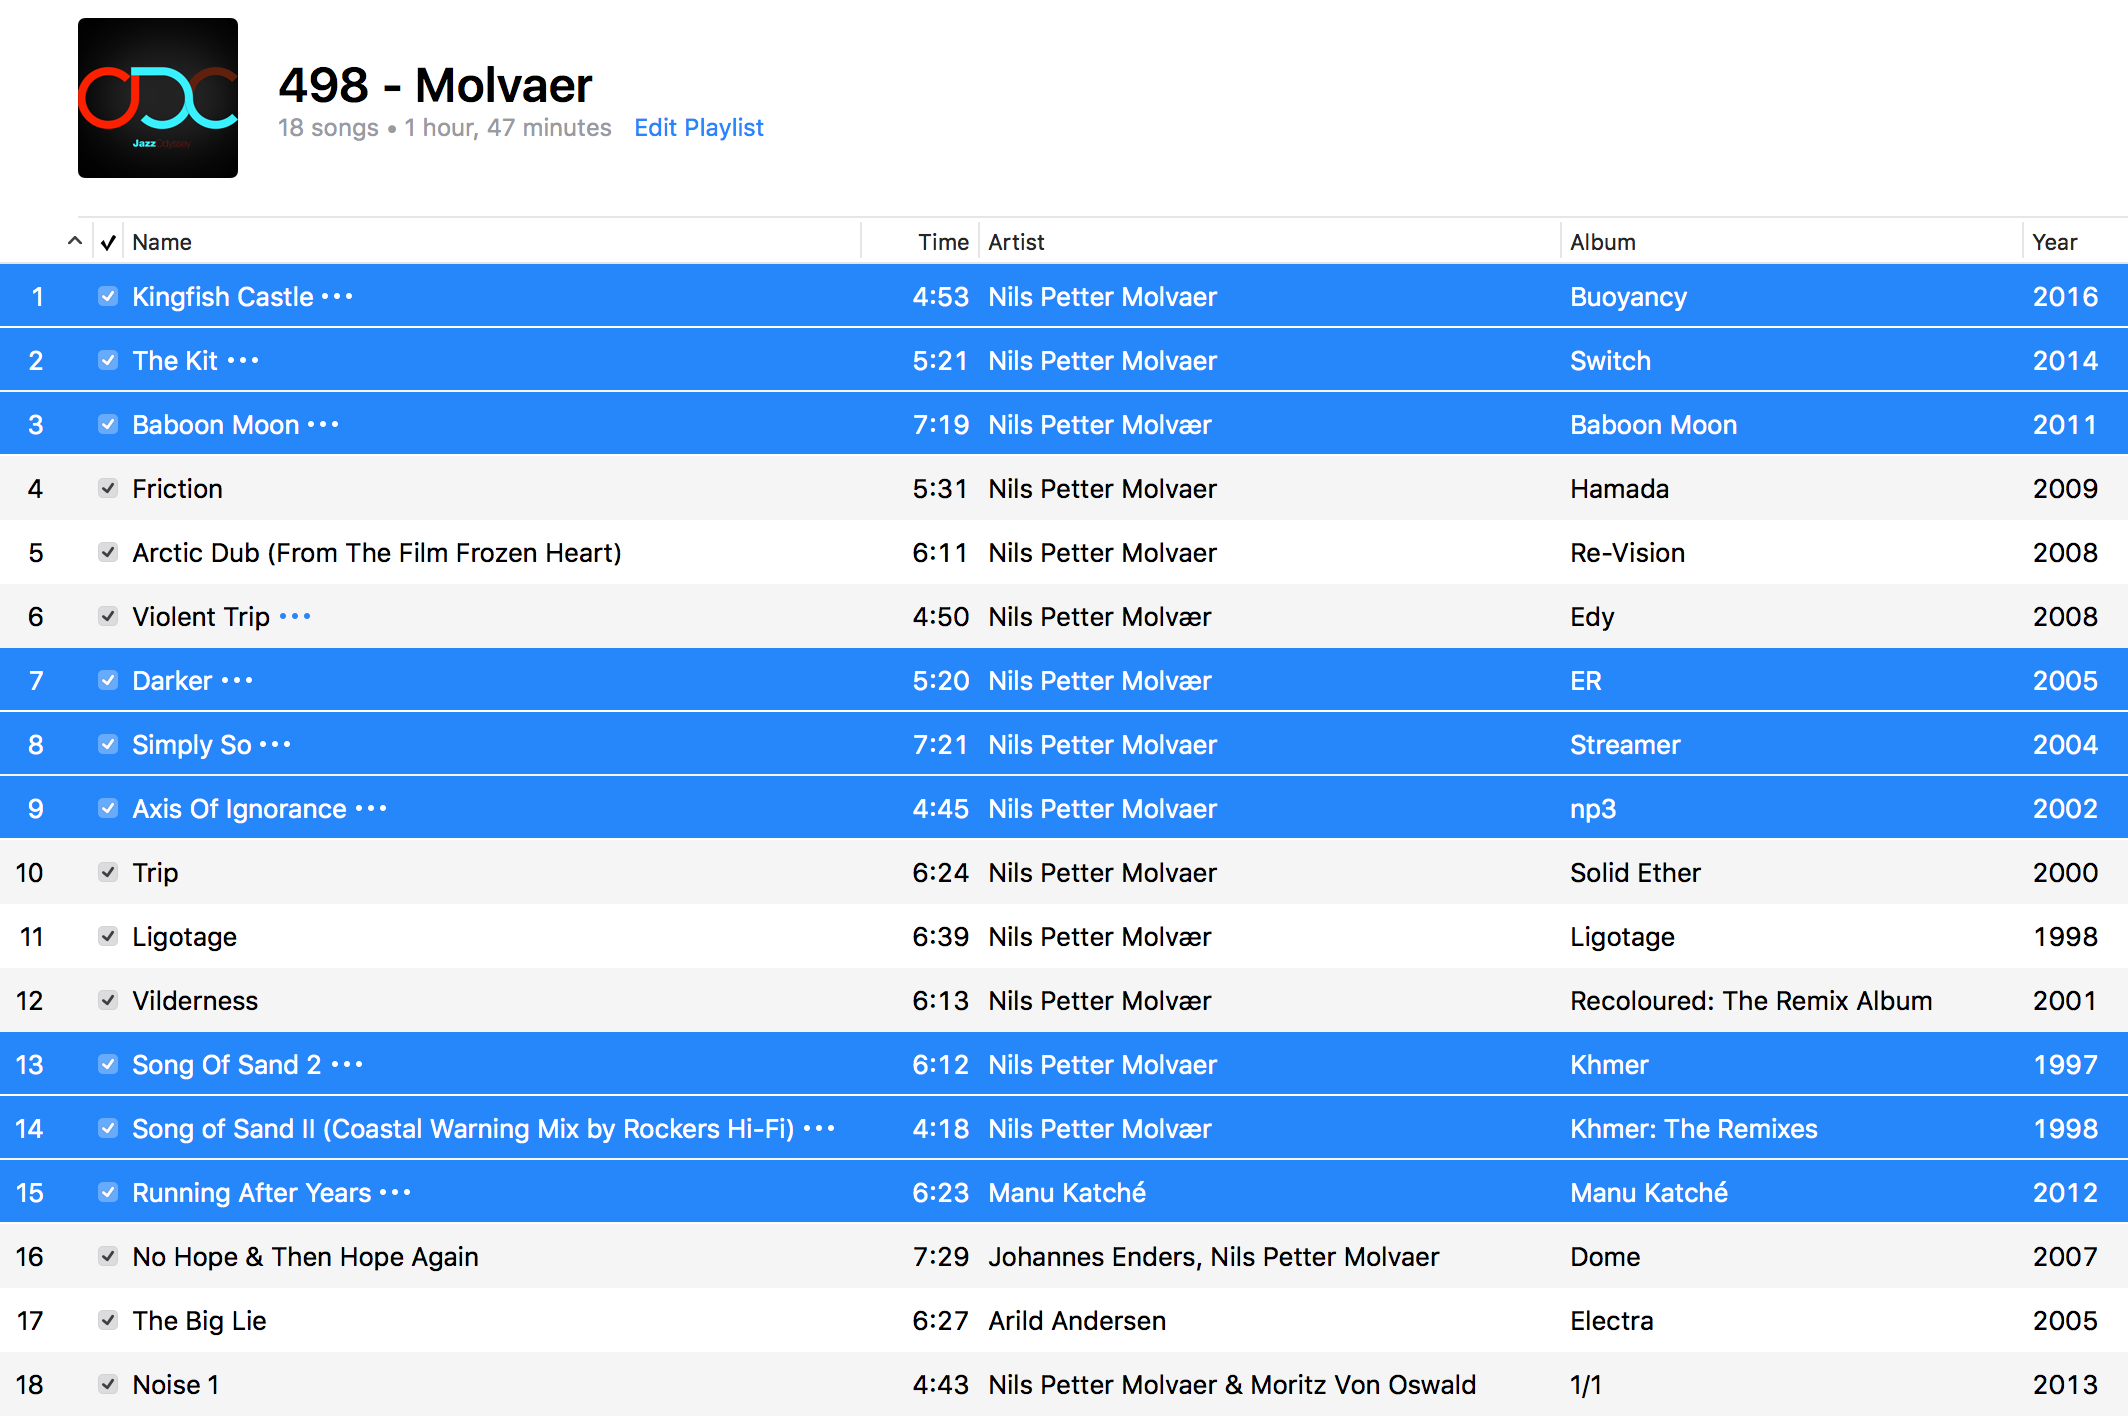 Jazz ODC #498 - Molvaer - Playlist